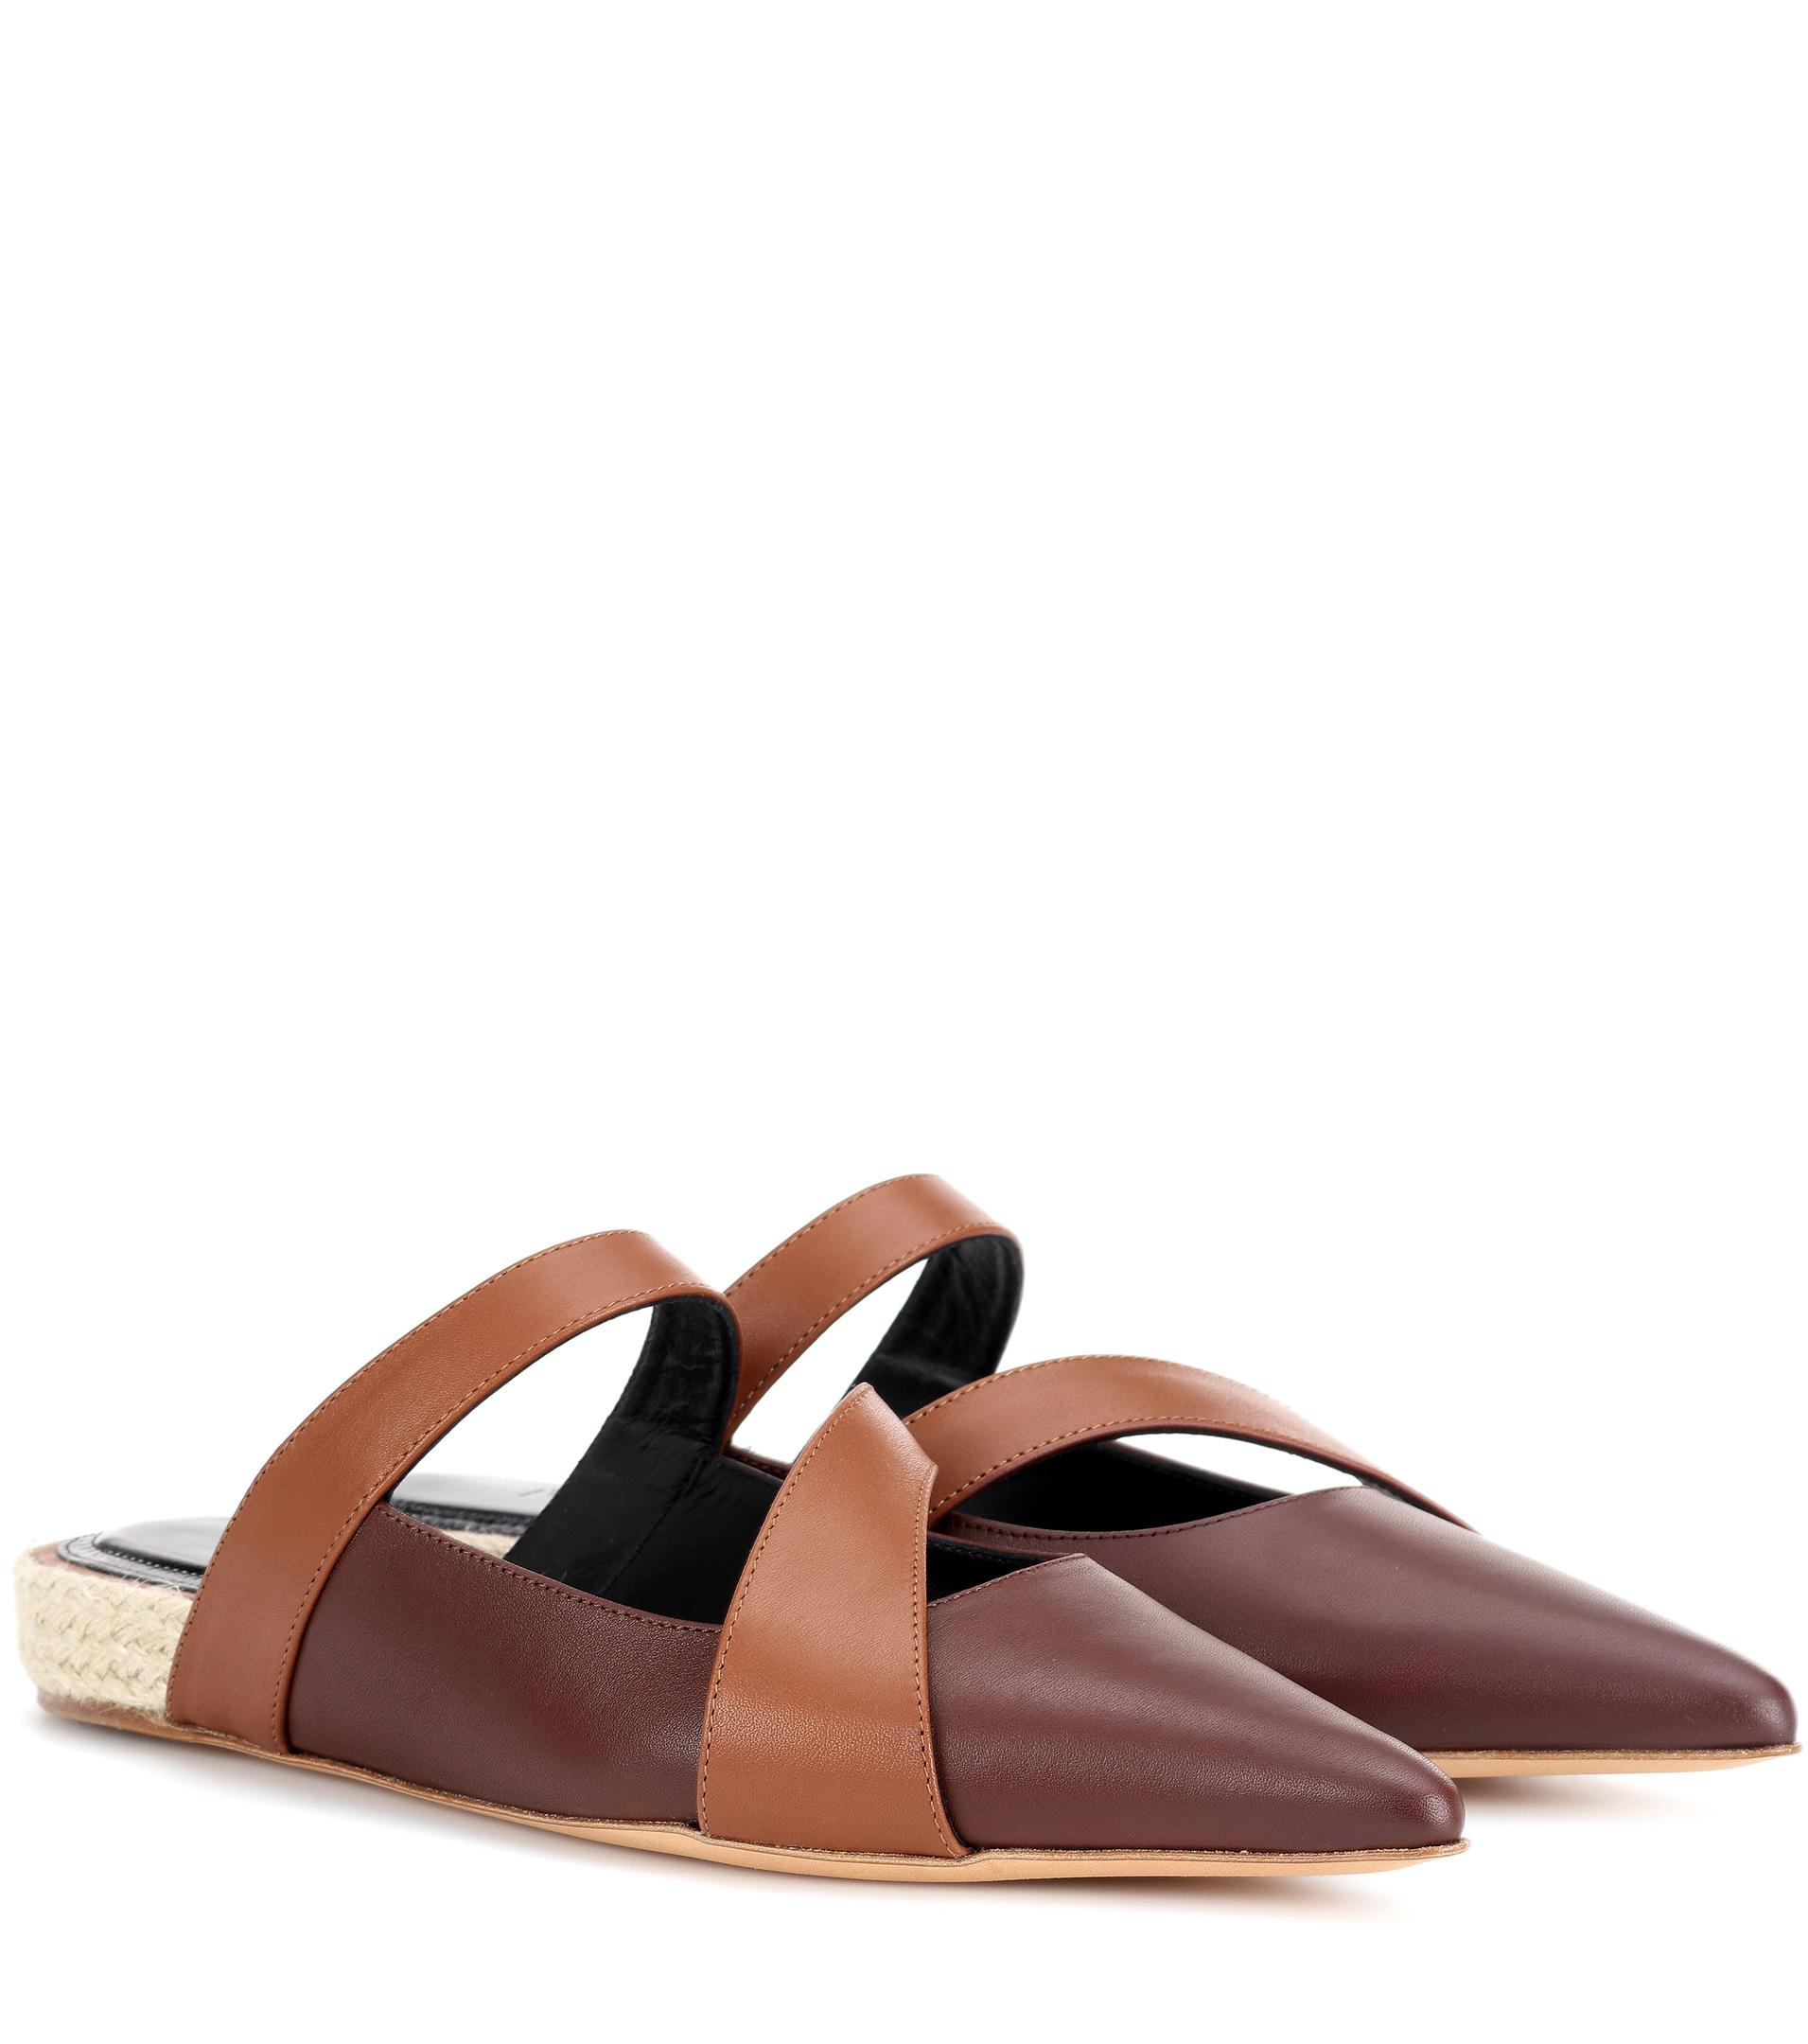 JW Anderson Leather slipper cheap online shop outlet top quality YgaJFu